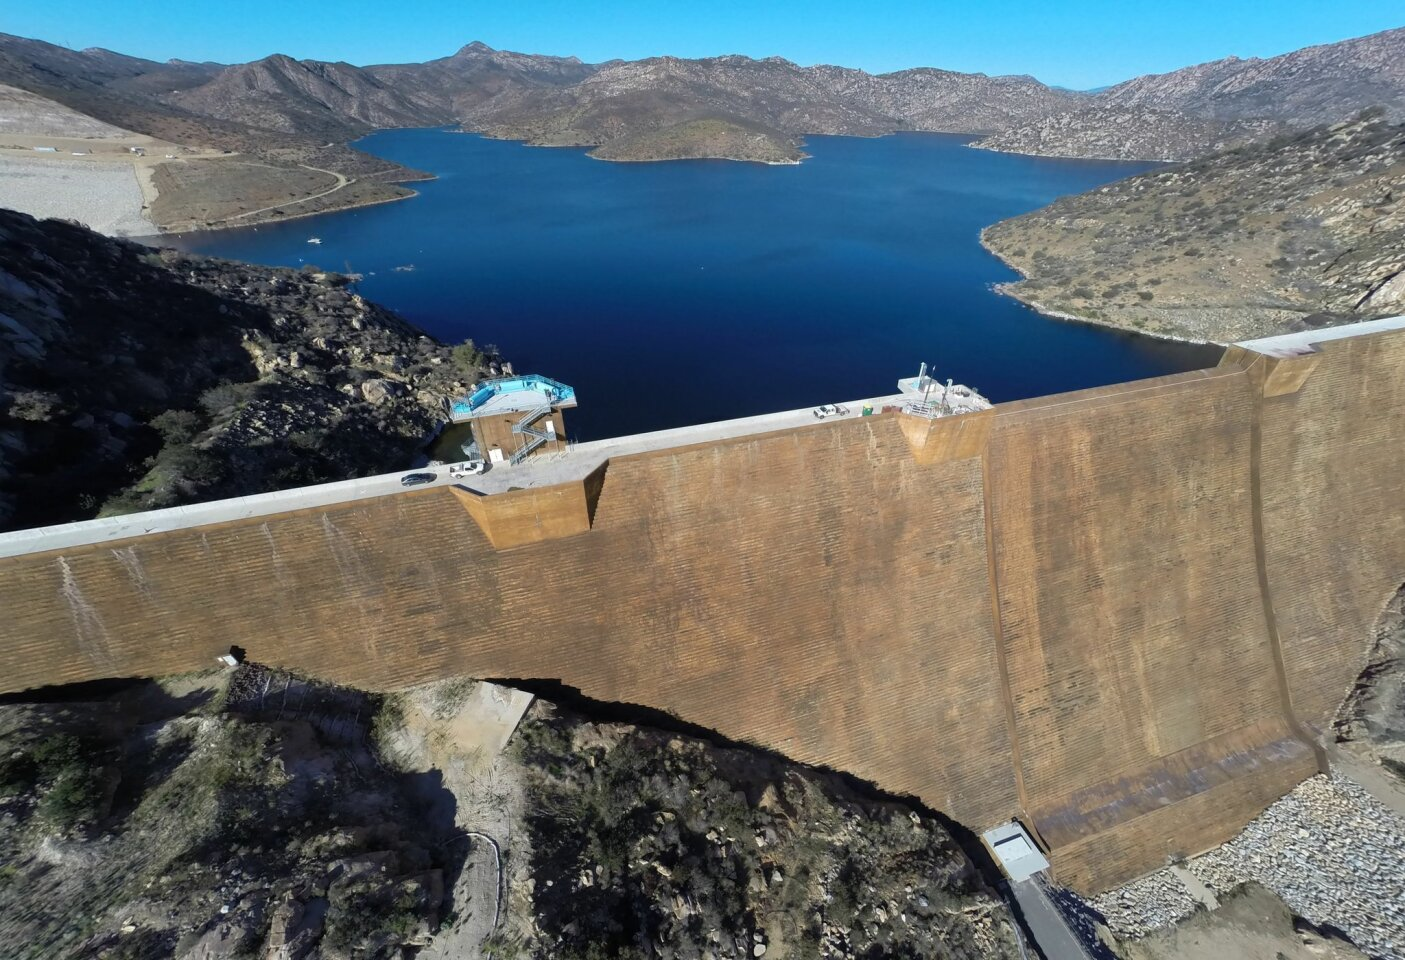 Aerial view of the San Vicente reservoir which is set to re-open in 2015, letting anglers and water sports enthusiasts return to the lake which was closed seven years ago for raising the height of the dam more than 100 feet.